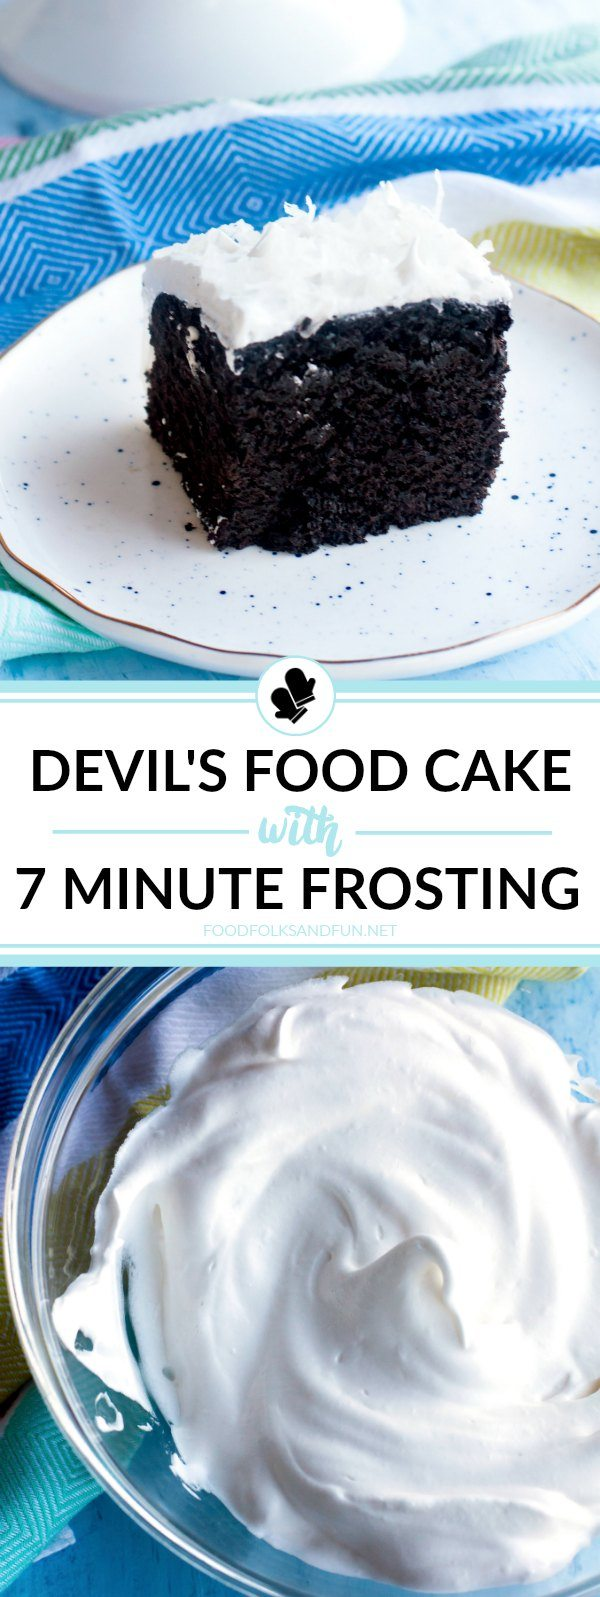 This is the best homemade Devil's Food Cake recipe I've ever tried, and it's covered in fluffy, thick and glossy 7 Minute Frosting. It makes the perfect dessert anytime of the year!